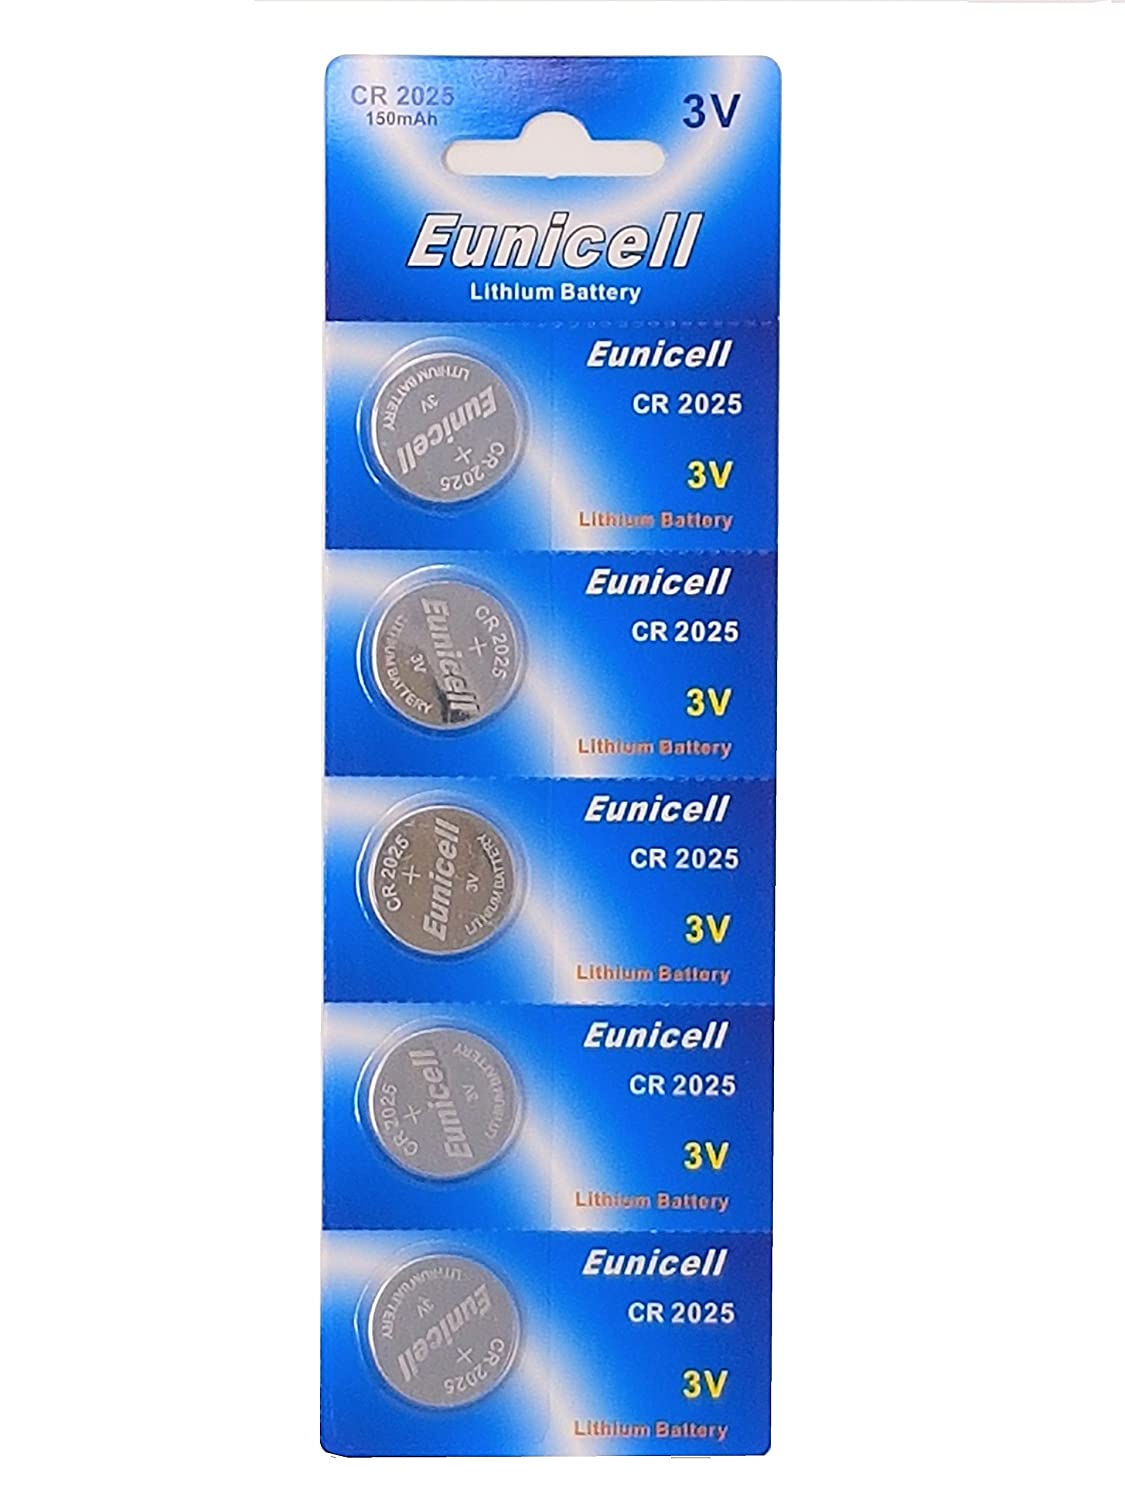 20 x Eunicell CR2025 3v Lithium Button Cell Batteries Camelion 5 x CR2025 Eunicell